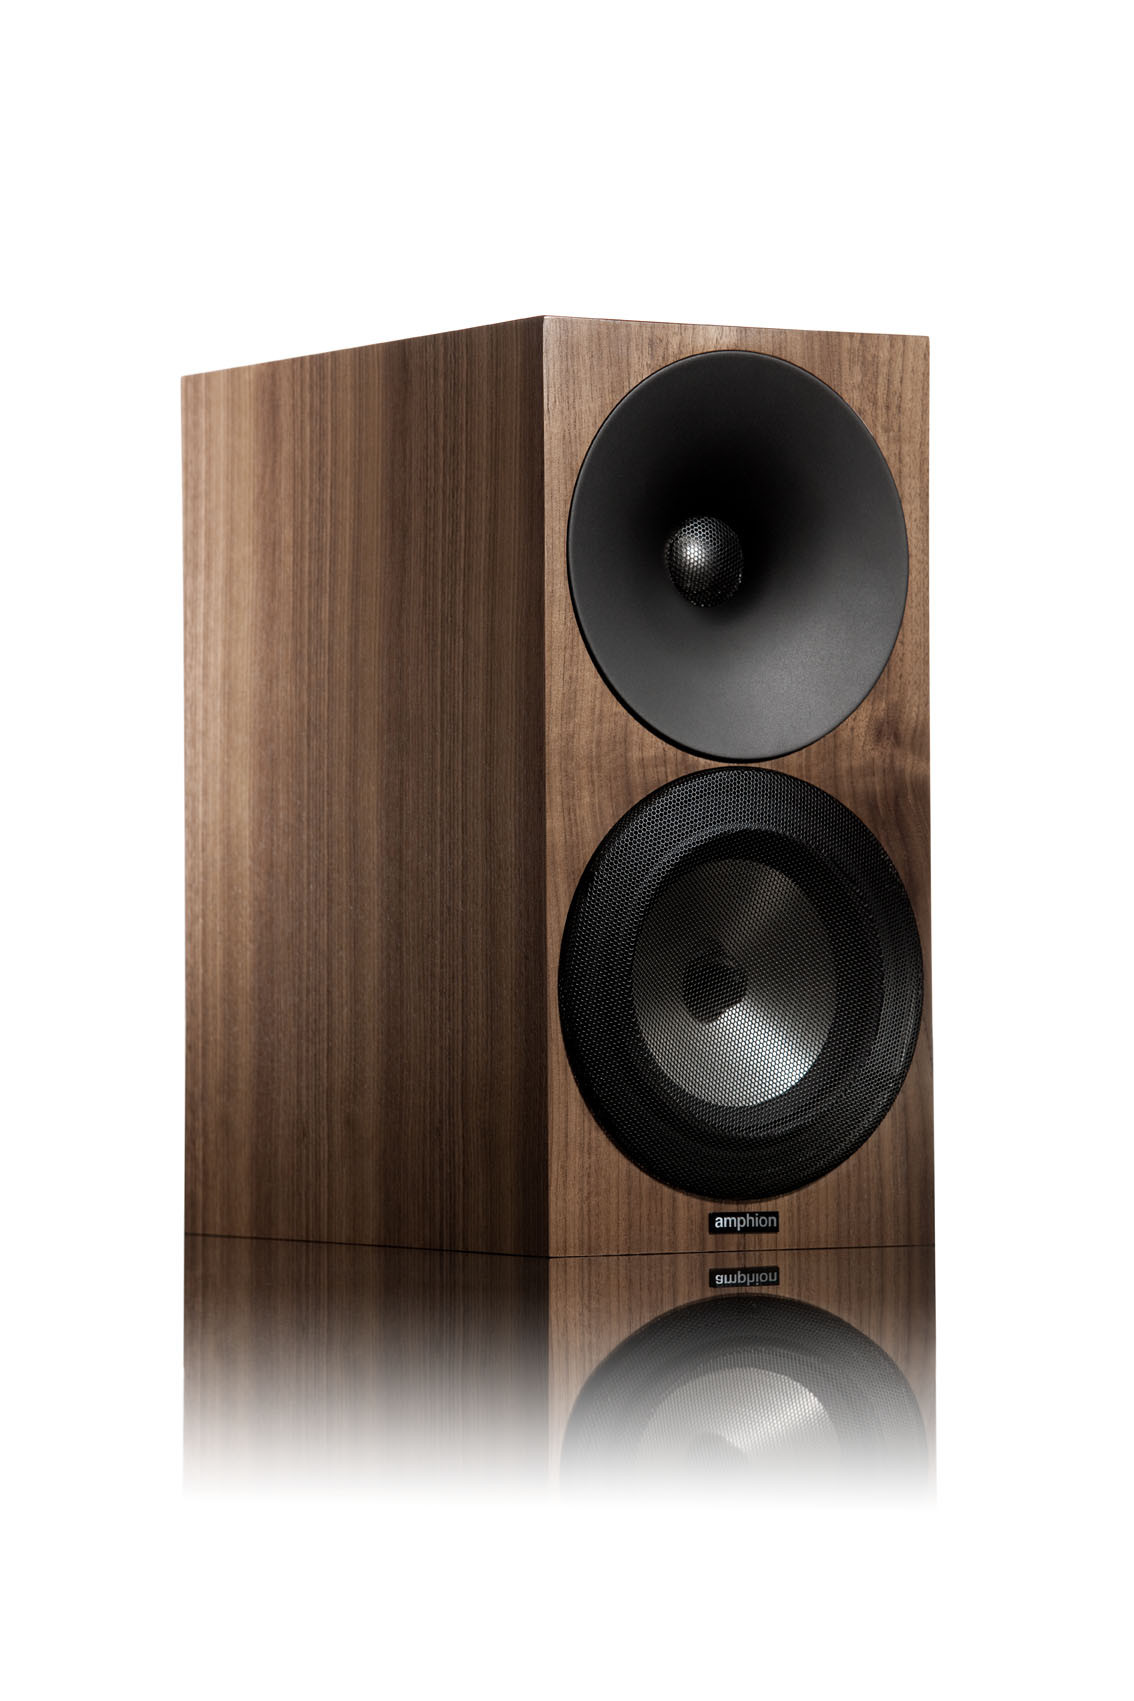 Amphion Argon 3s jalustakaiutin